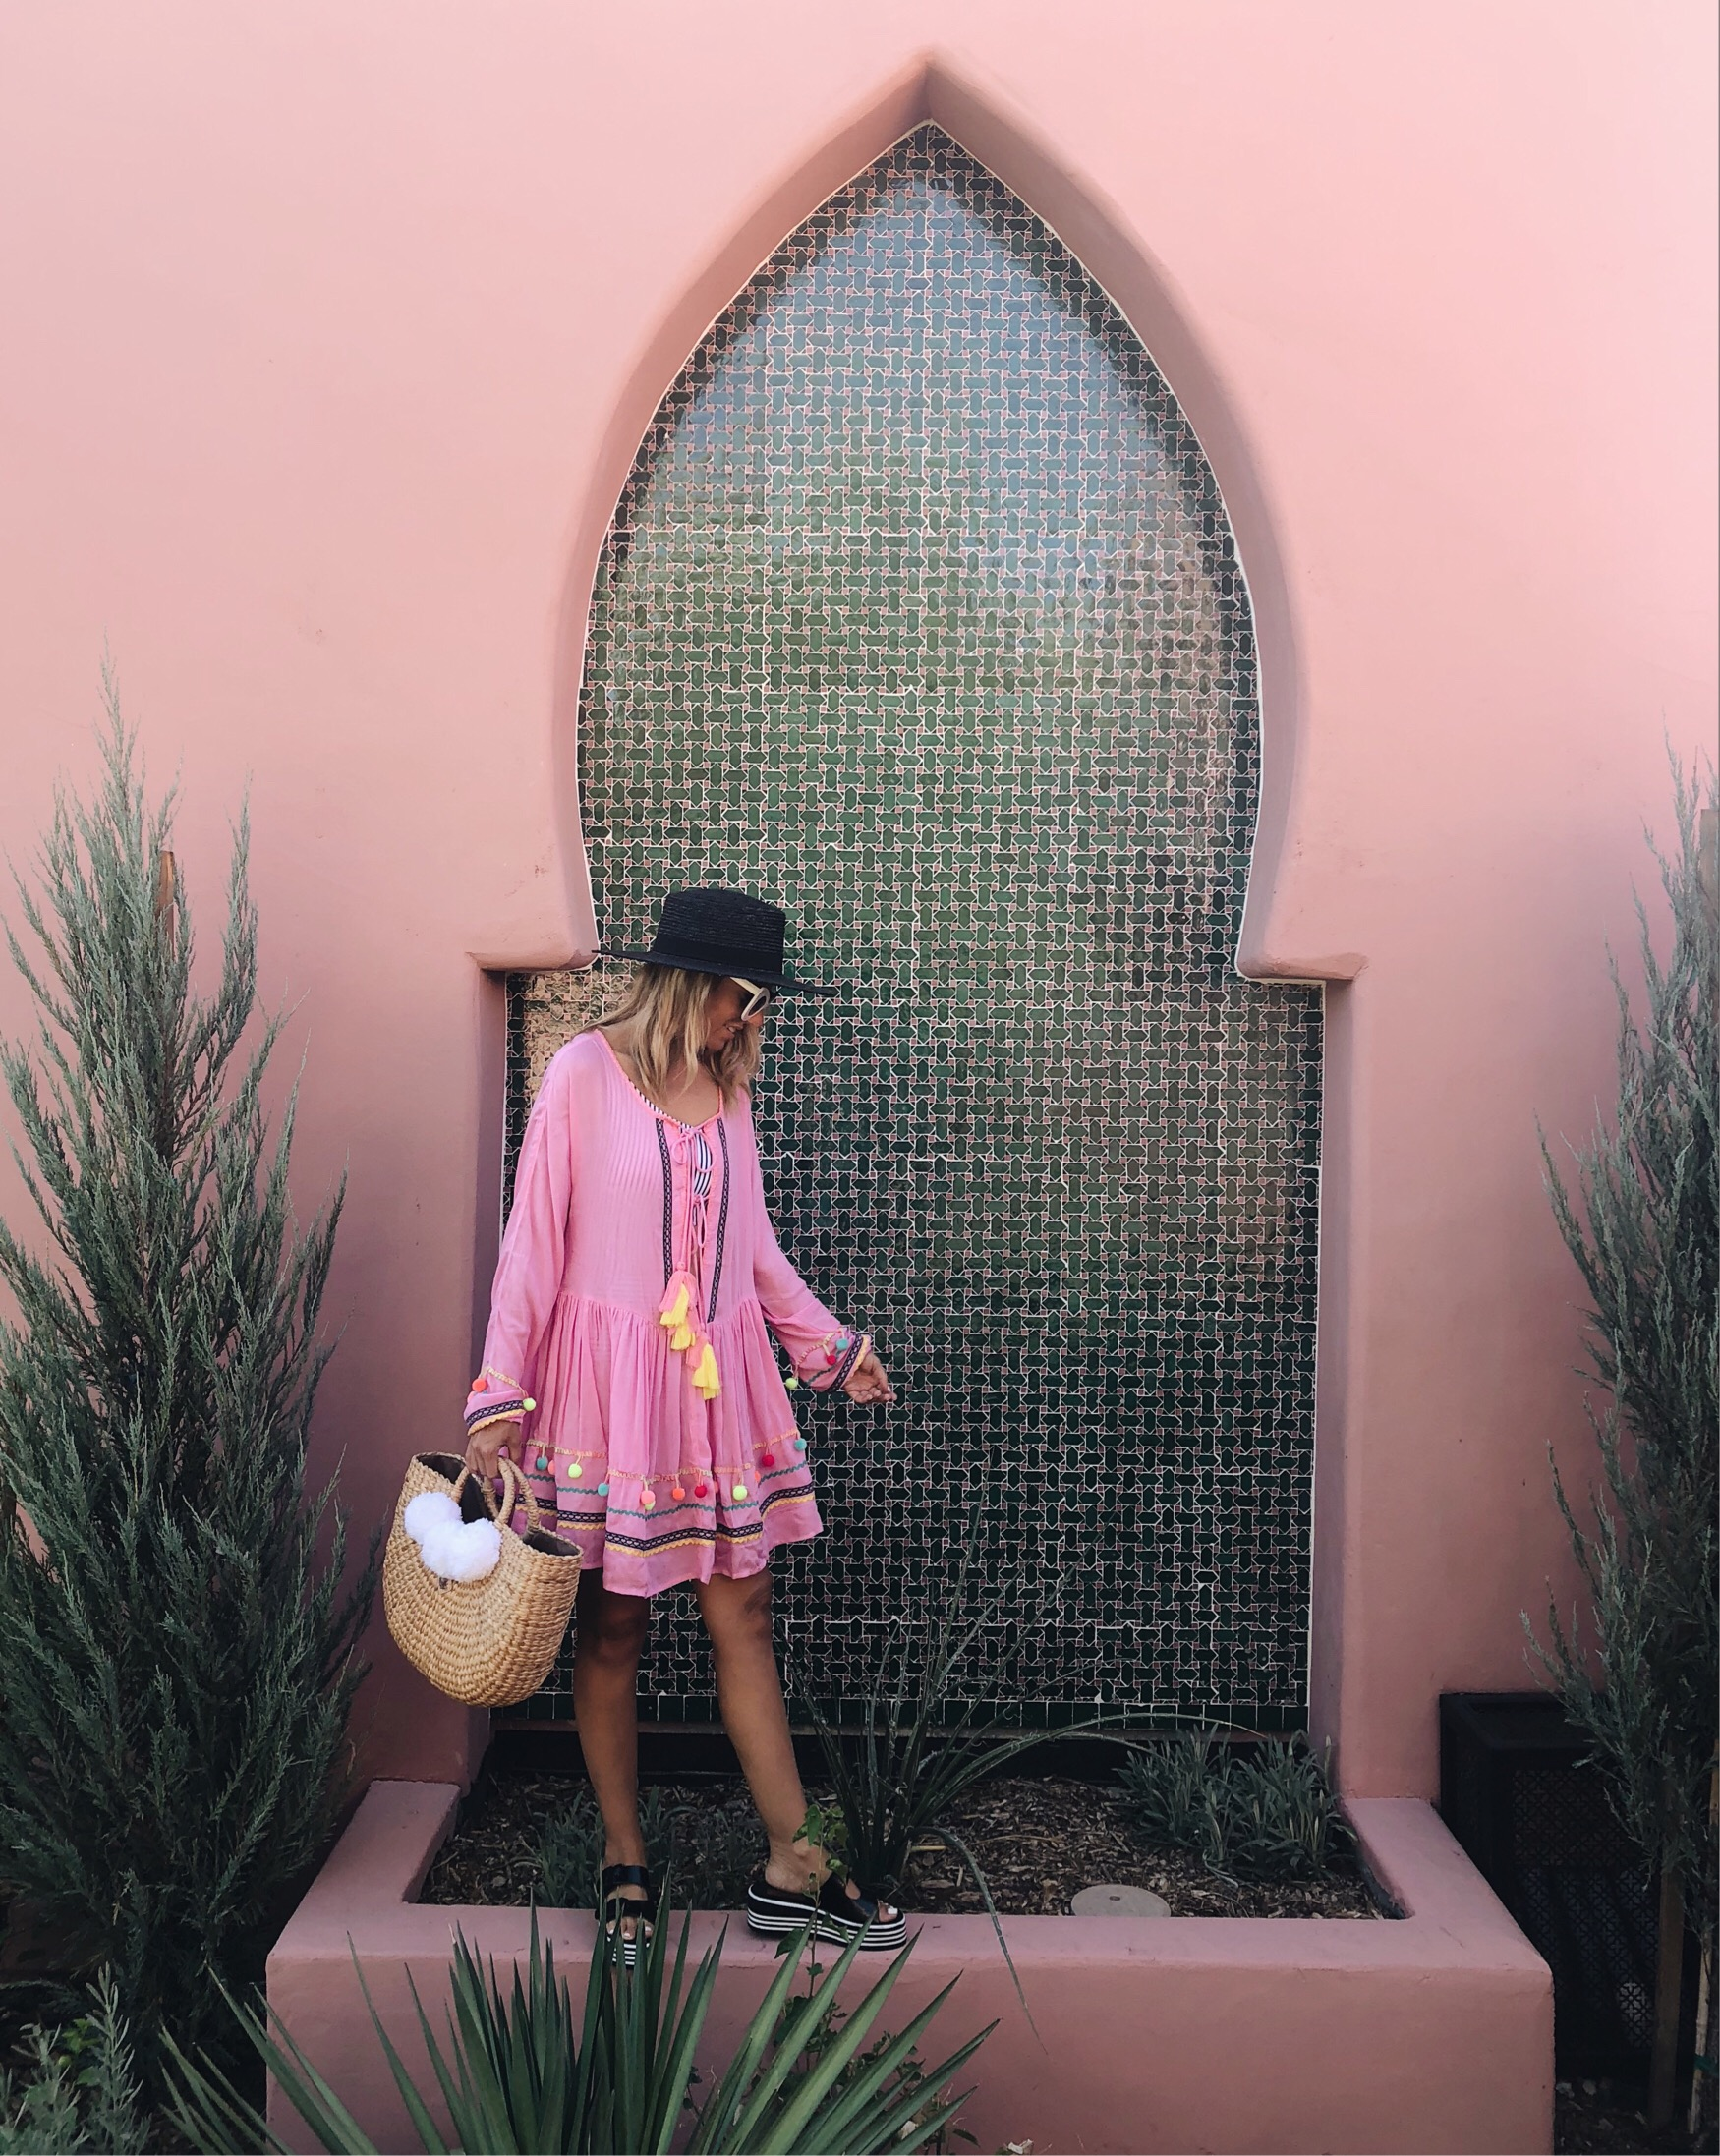 ANNIVERSARY WEEKEND GETAWAY AT THE SANDS HOTEL- Jaclyn De Leon Style + PALM SPRINGS HOTEL + BOHEMIAN + MOROCCAN + PINK POM POM SWIMSUIT COVER UP + STRAW BEACH TOTE + BLACK WIDE BRIM HAT + PLATFORM SANDALS + ASOS OUTFIT + SUMMER STYLE + VACATION + TRAVEL